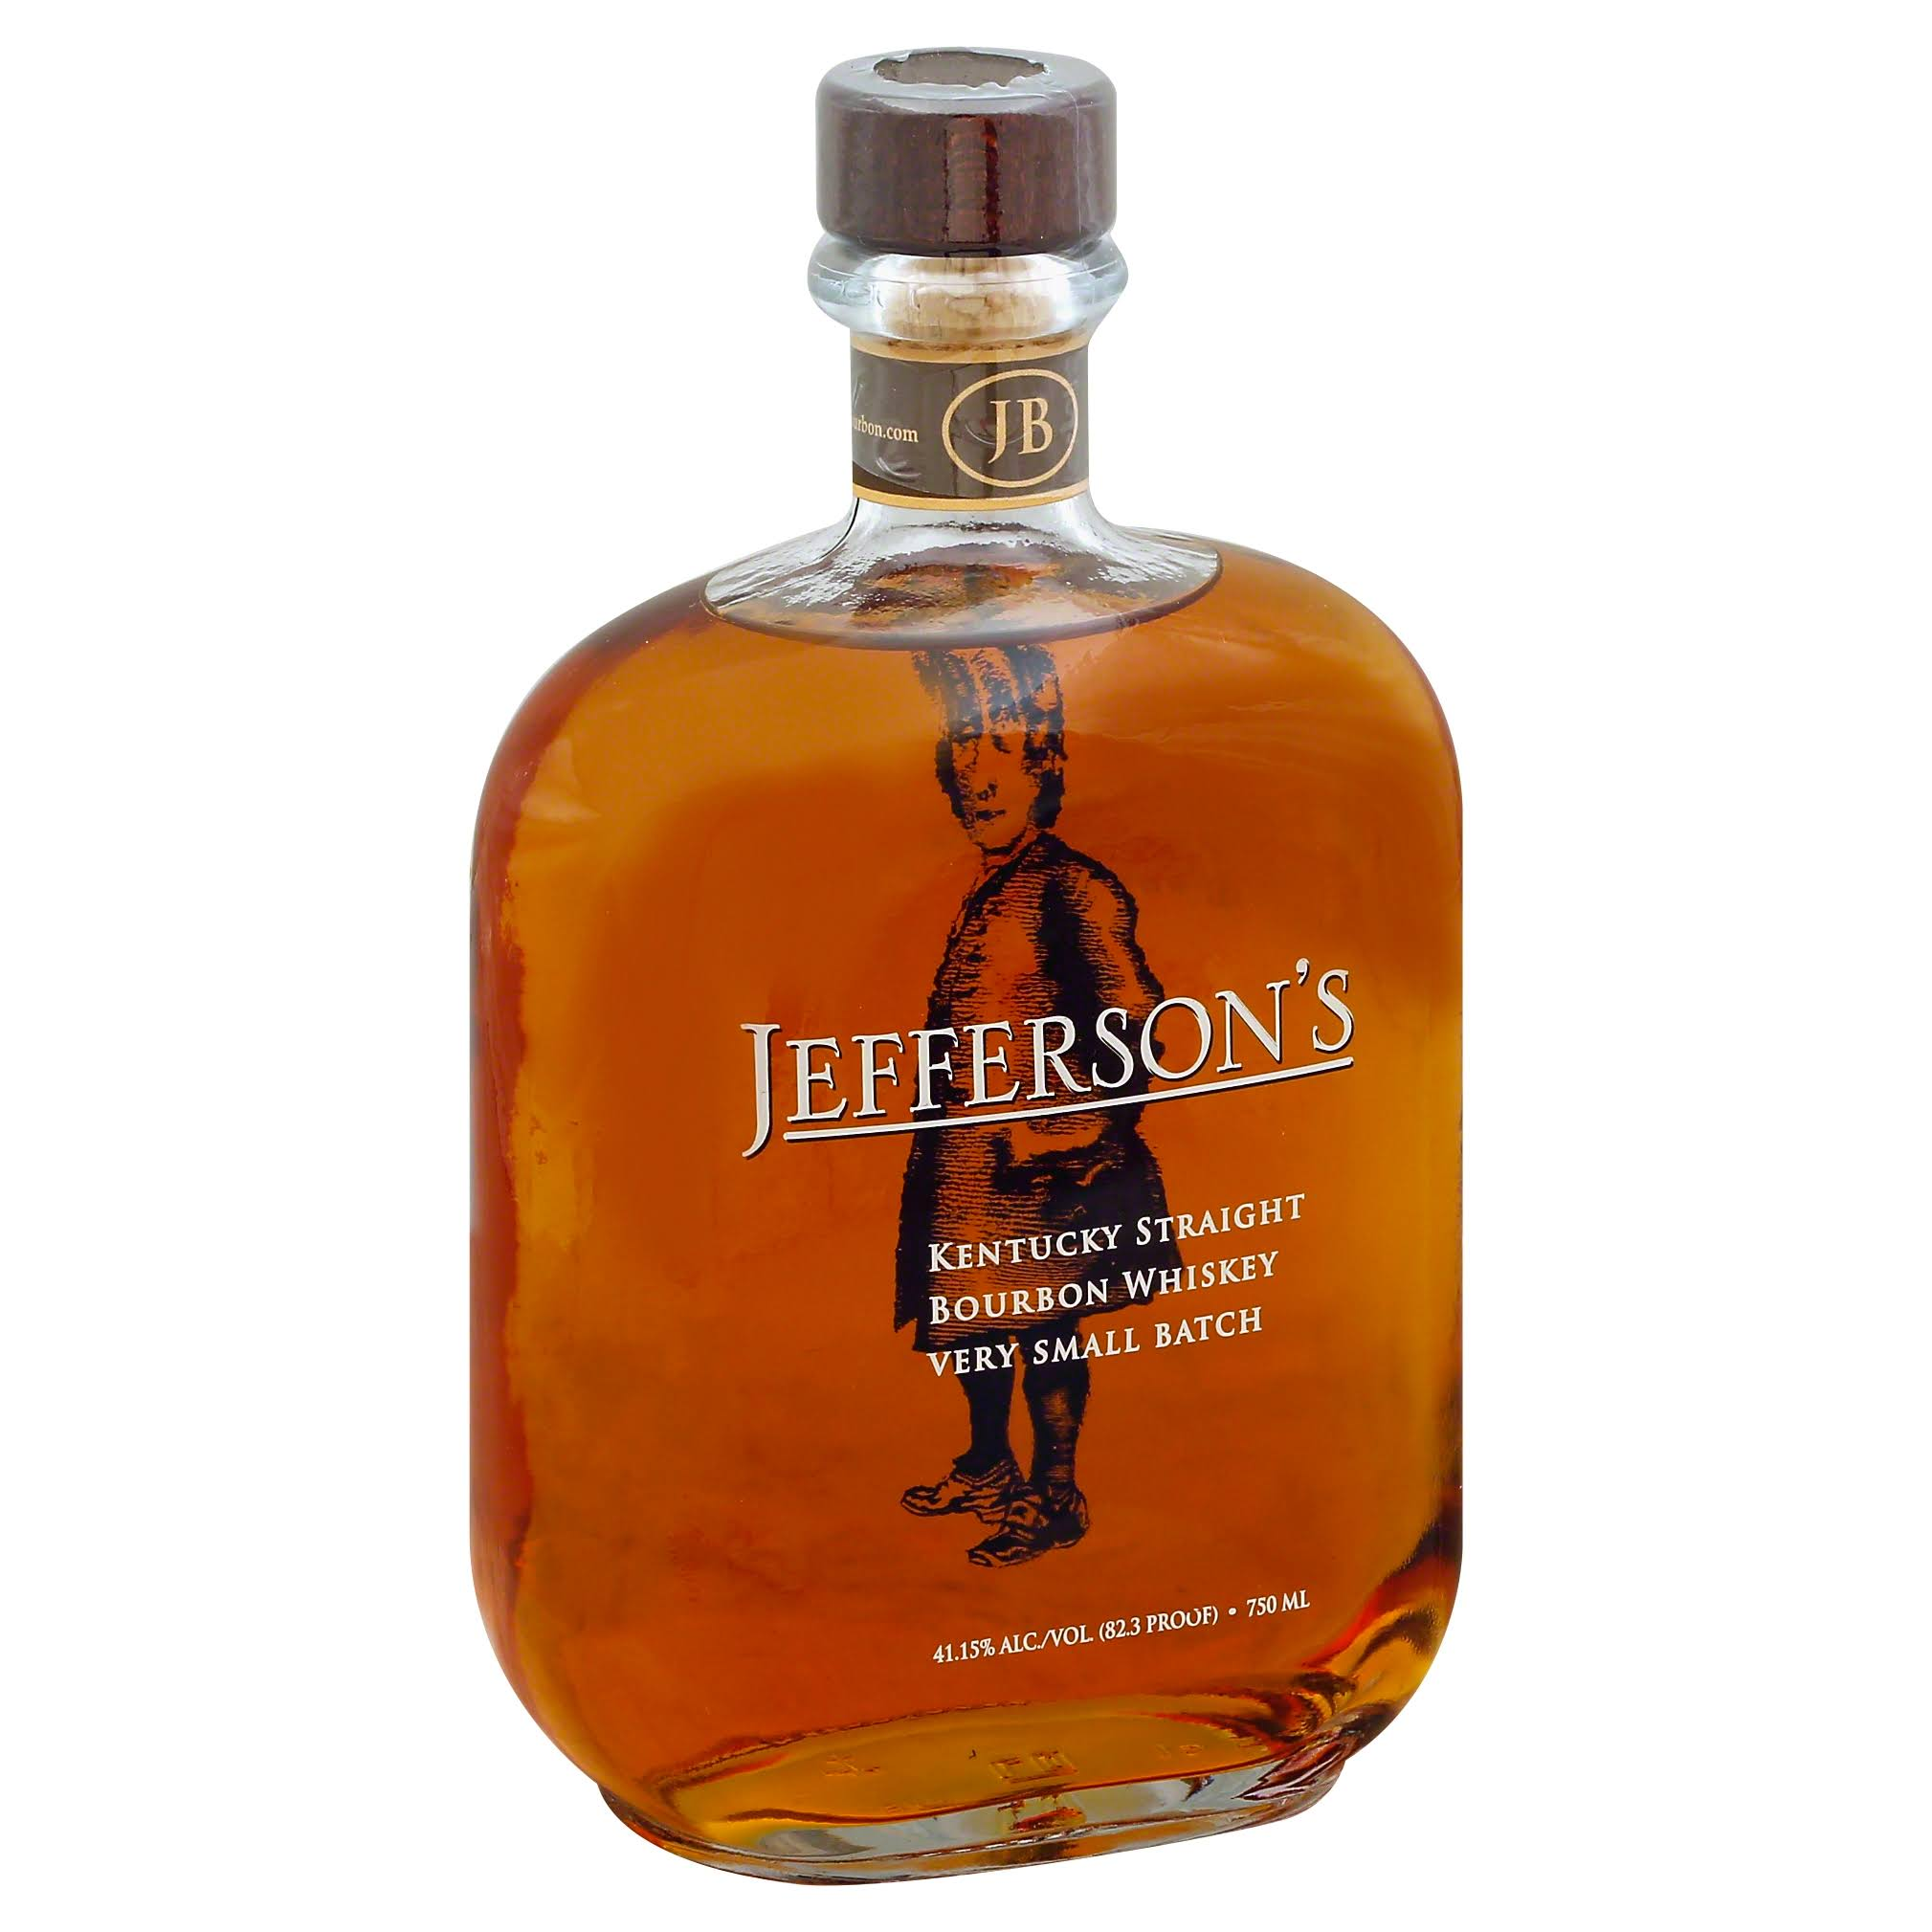 Jefferson's Kentucky Bourbon Whiskey